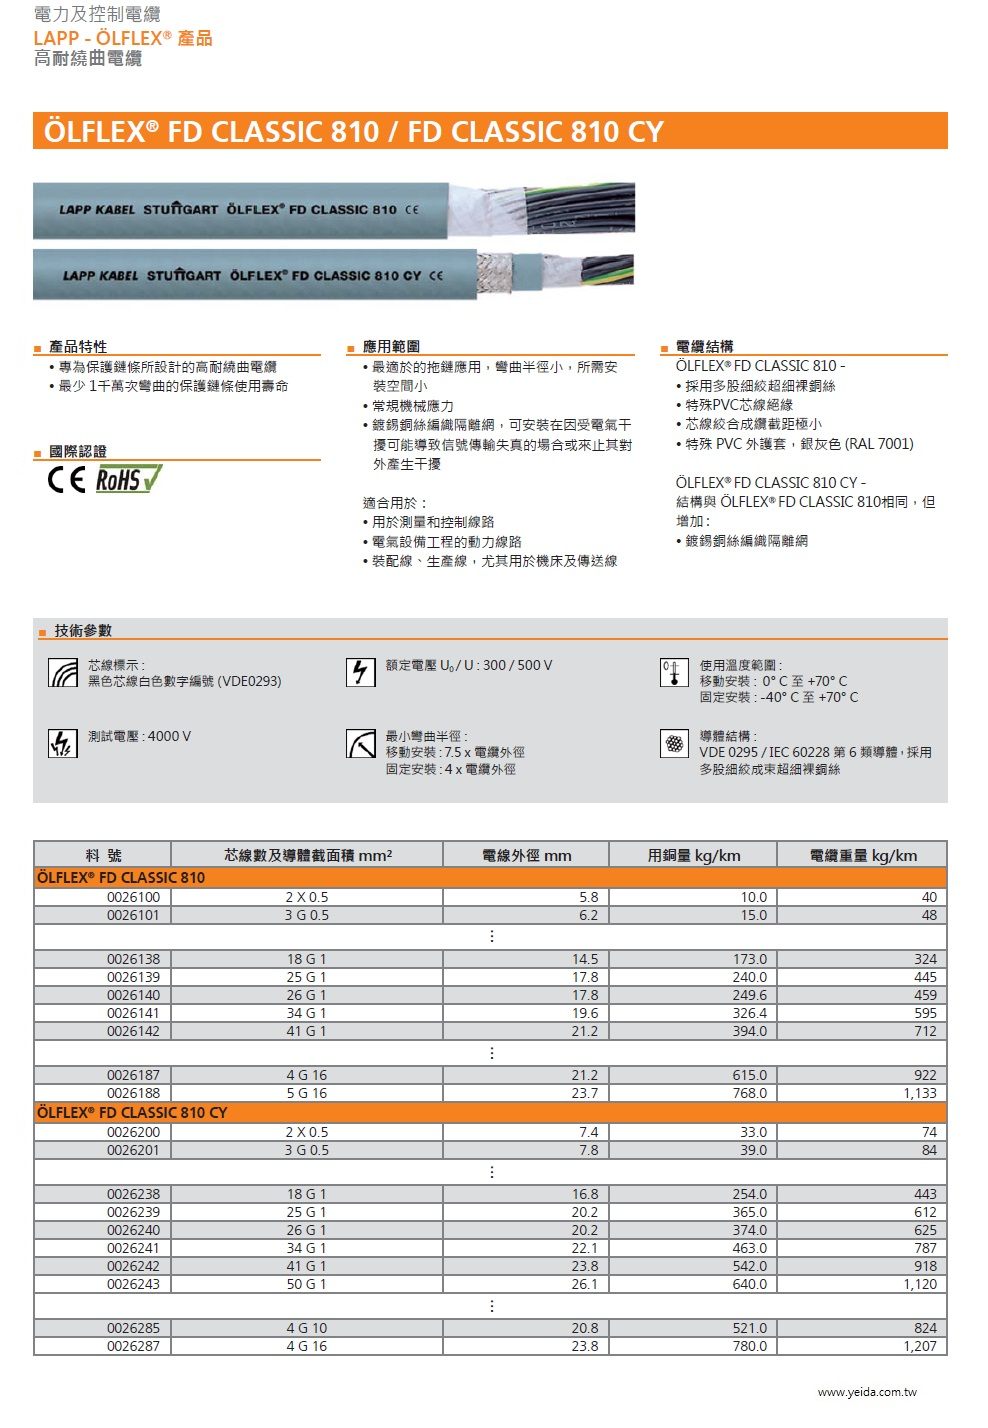 LAPP- OLFLEX  FD CLASSIC 810 CP 工業級(超柔移動式防油耐磨損銅網隔離)連接線Screened, PVC- insulated, numbered, PVC- inner and PUR- outer sheath cable產品圖